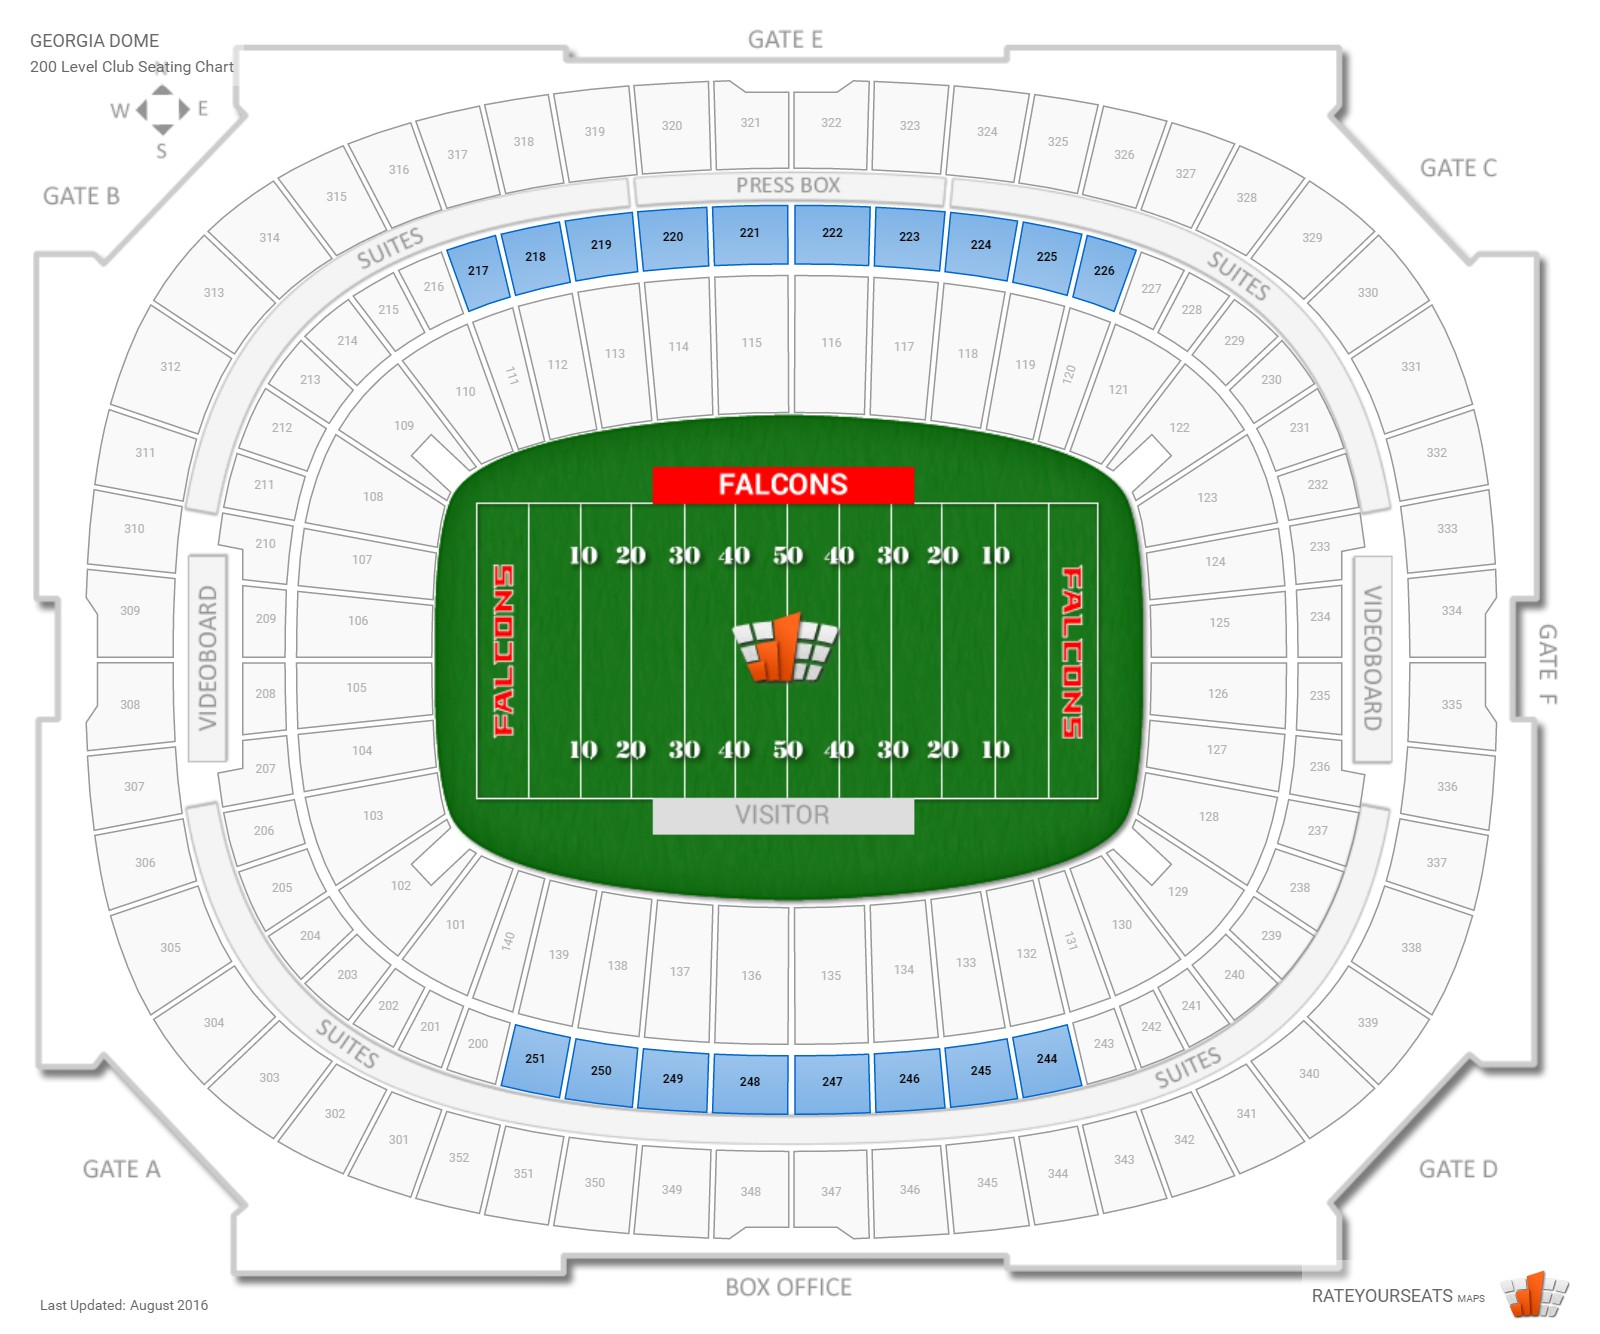 Georgia Dome 200 Level Club seating chart